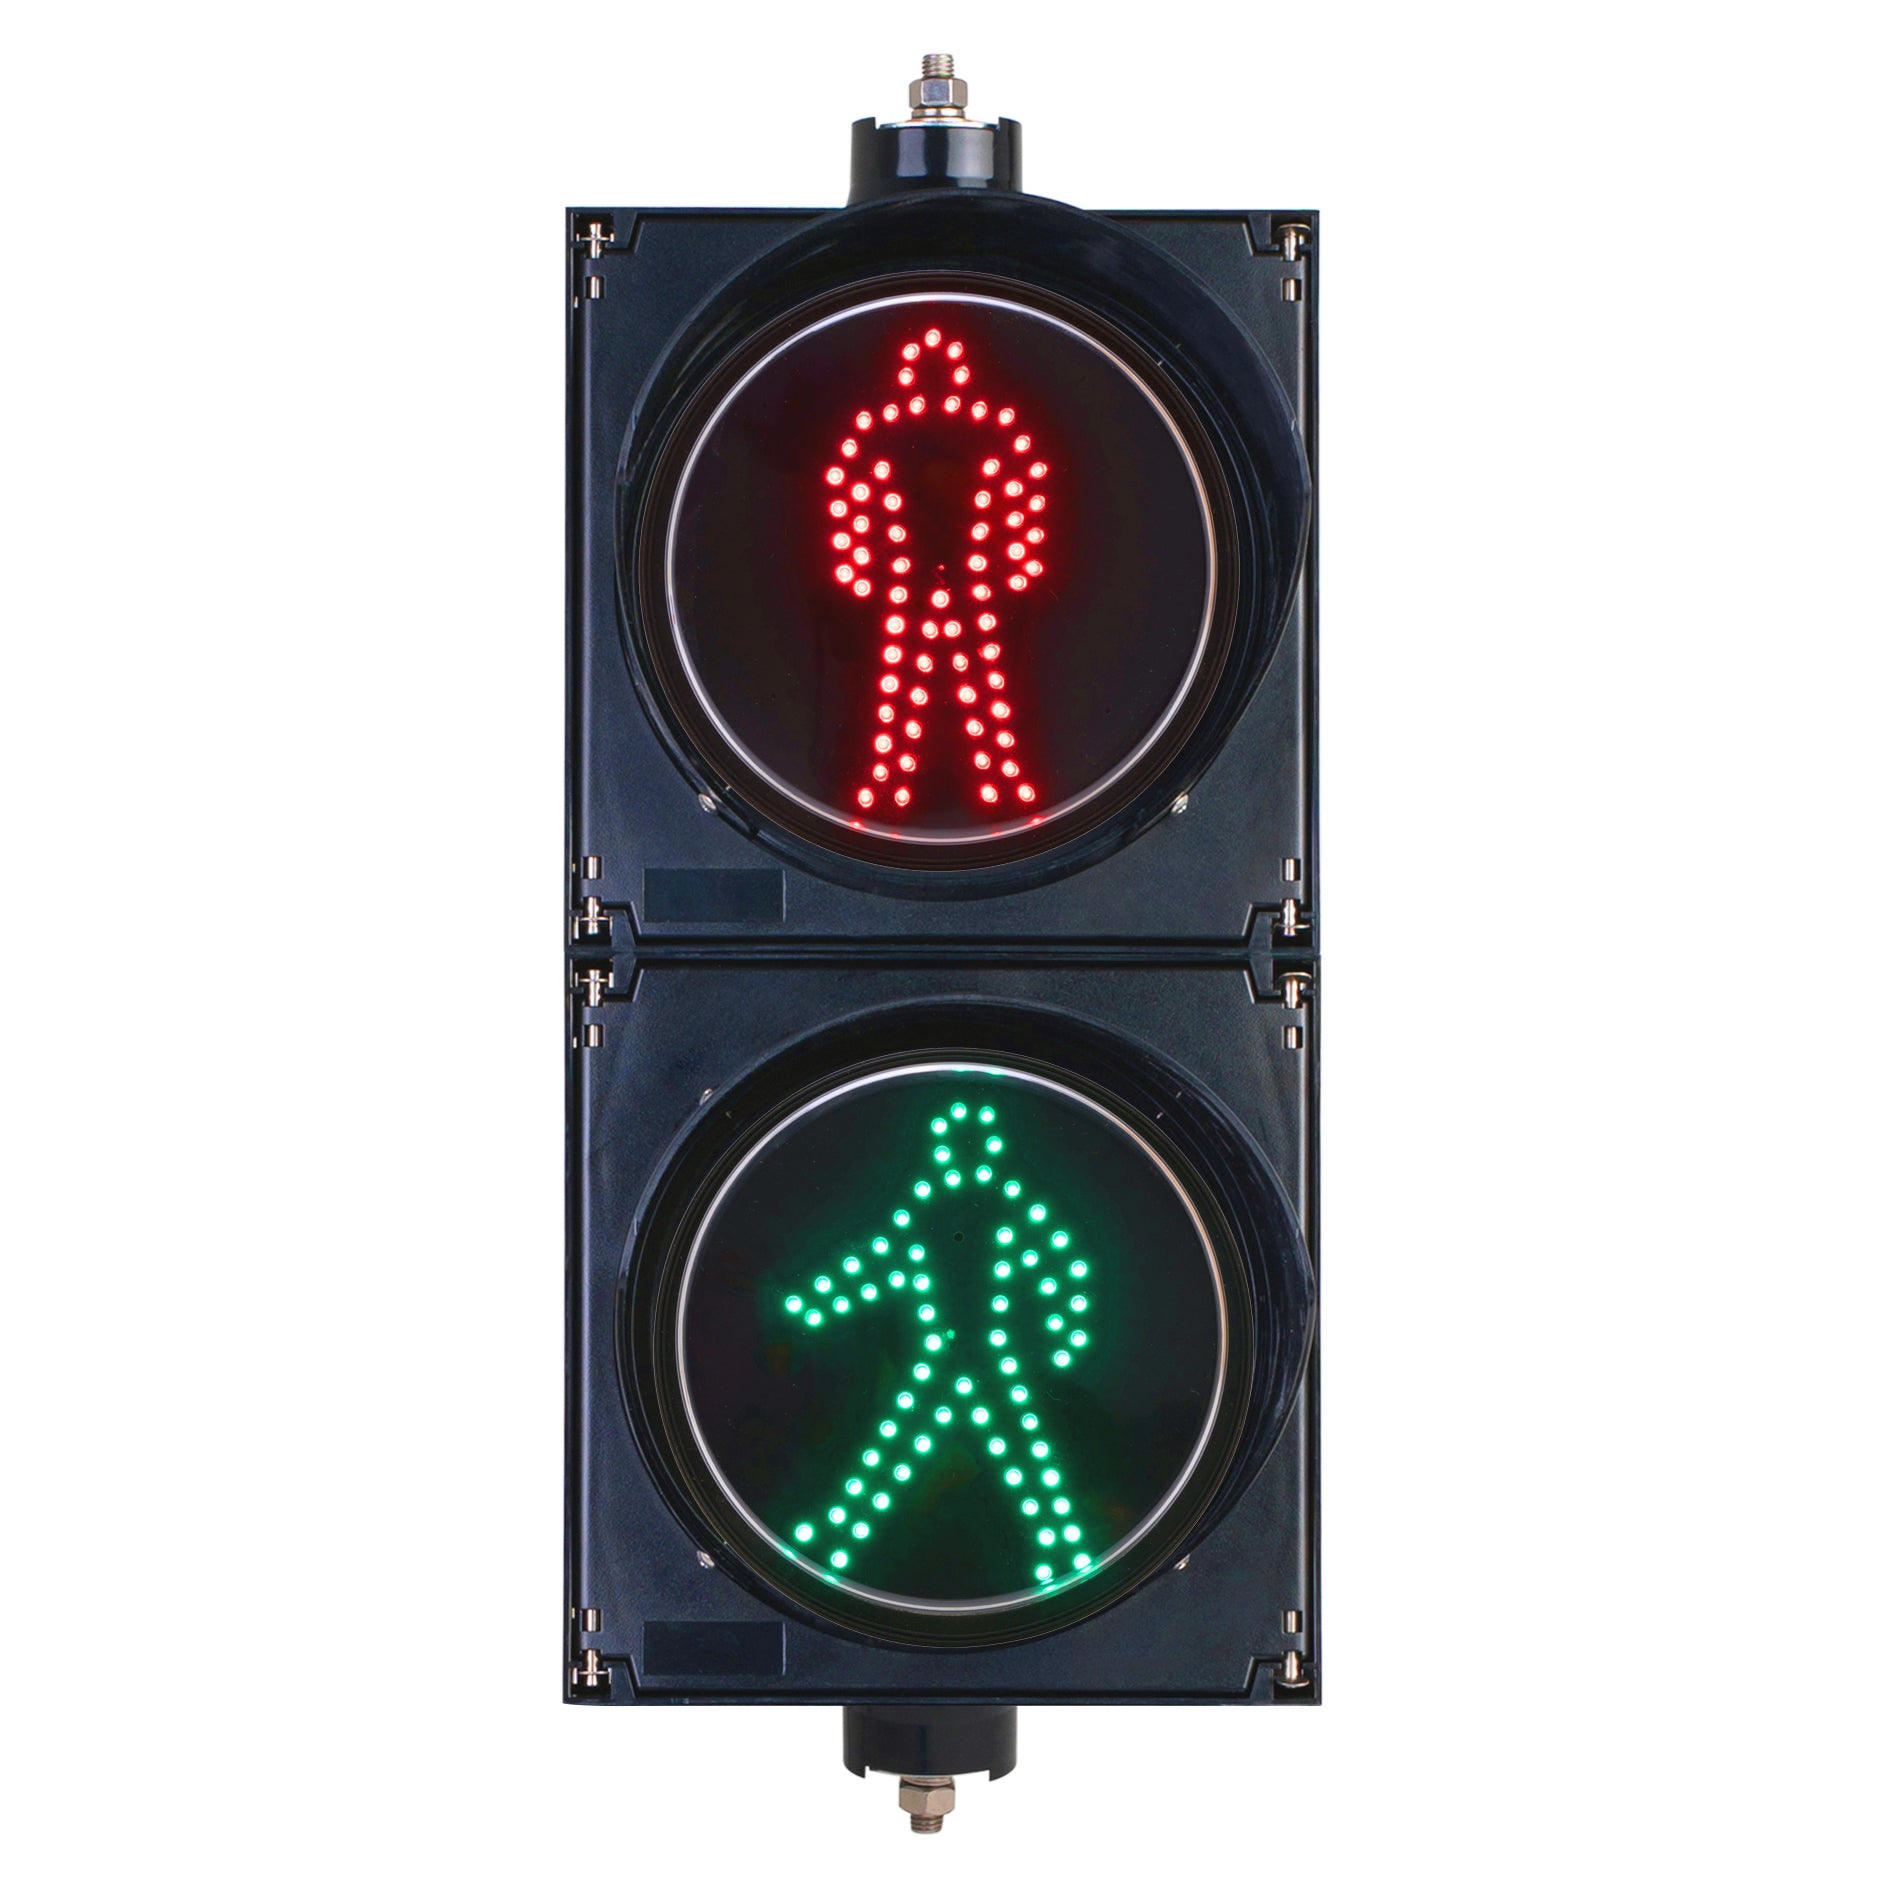 BNR BNR 2 Aspect 200mm Pedestrian LED Traffic Lights 12-24VDC or 85-265VAC - Red Man & Green Walking Man - BNR Industrial